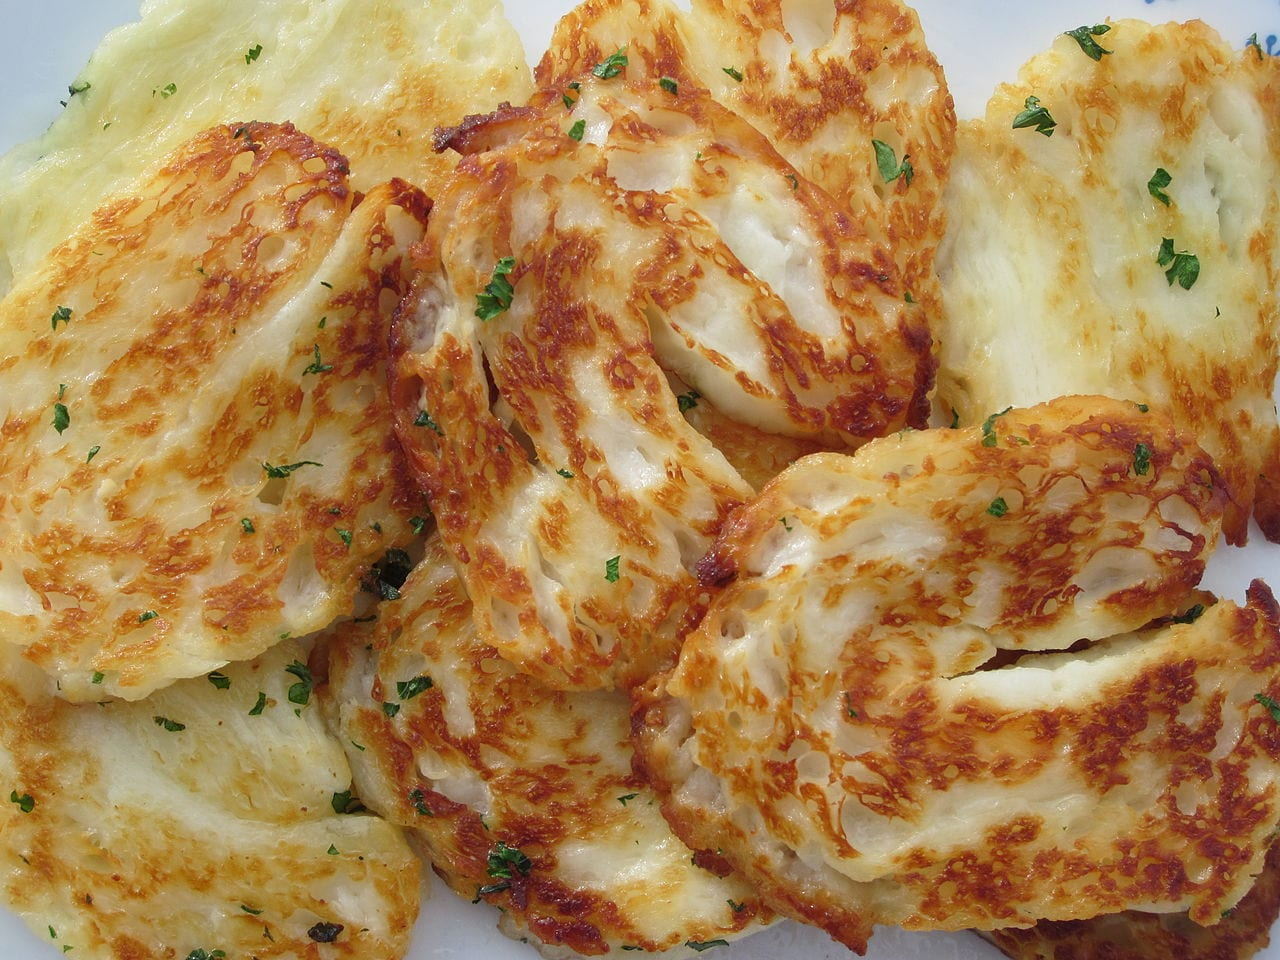 Grilled Halloumi cheese from Cyprus